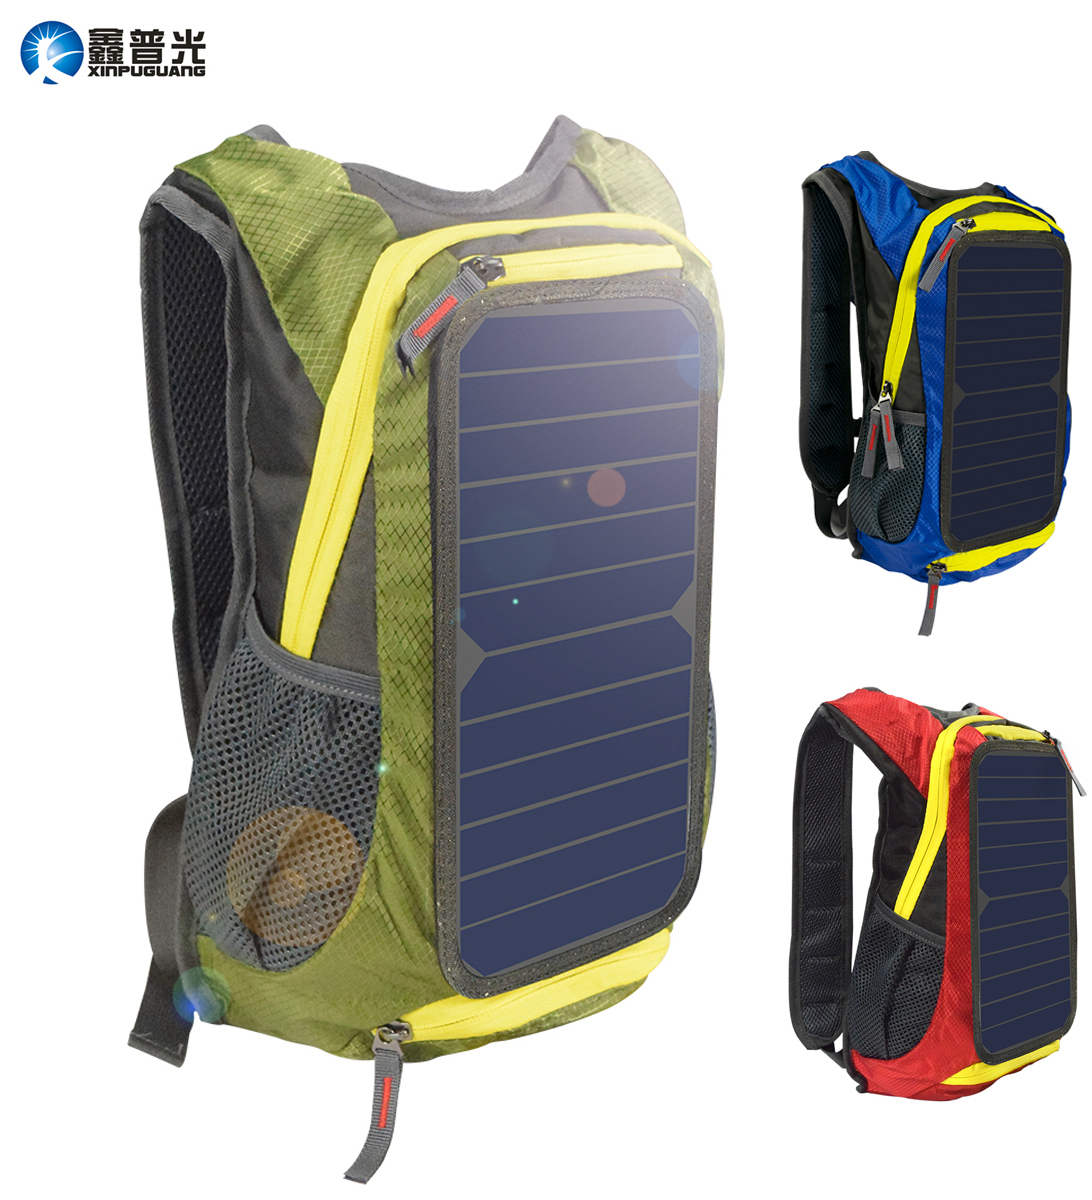 6W 6V Green/Red/Blue Solar Panel Backpack Men Women Battery Power USB Charger For Phone Laptop Outdoor Camping Sport Hiking